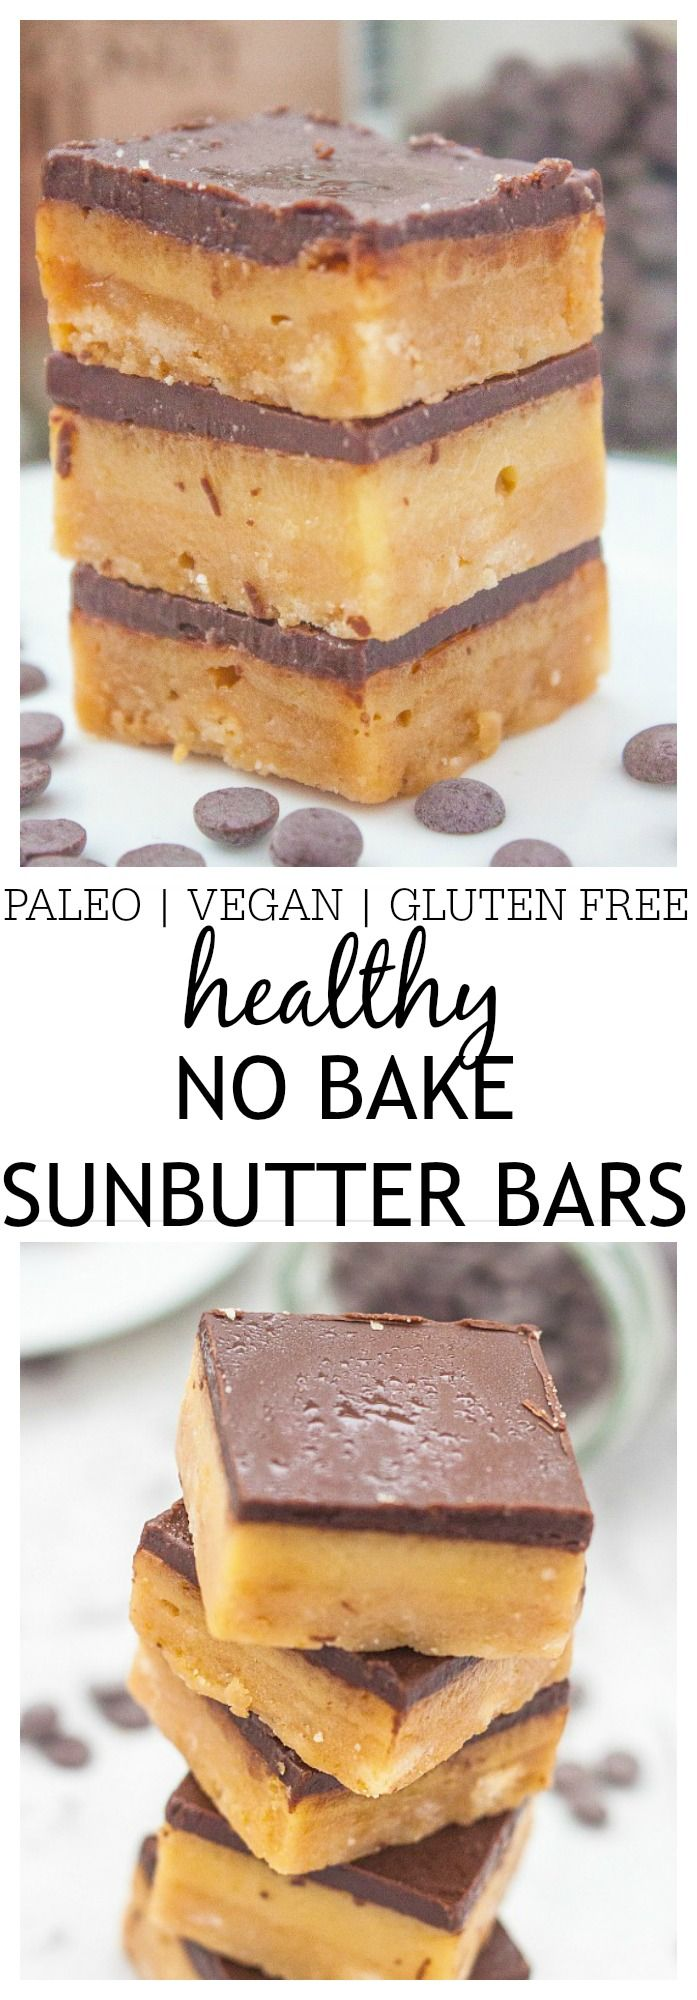 Healthy Paleo No Bake SunButter Bars- These No Bake SunButter Bars take just 10 minutes to whip up and can easily be adapted for those with allergies! Completely gluten free, vegan and paleo! @thebigmansworld -thebigmansworld.com